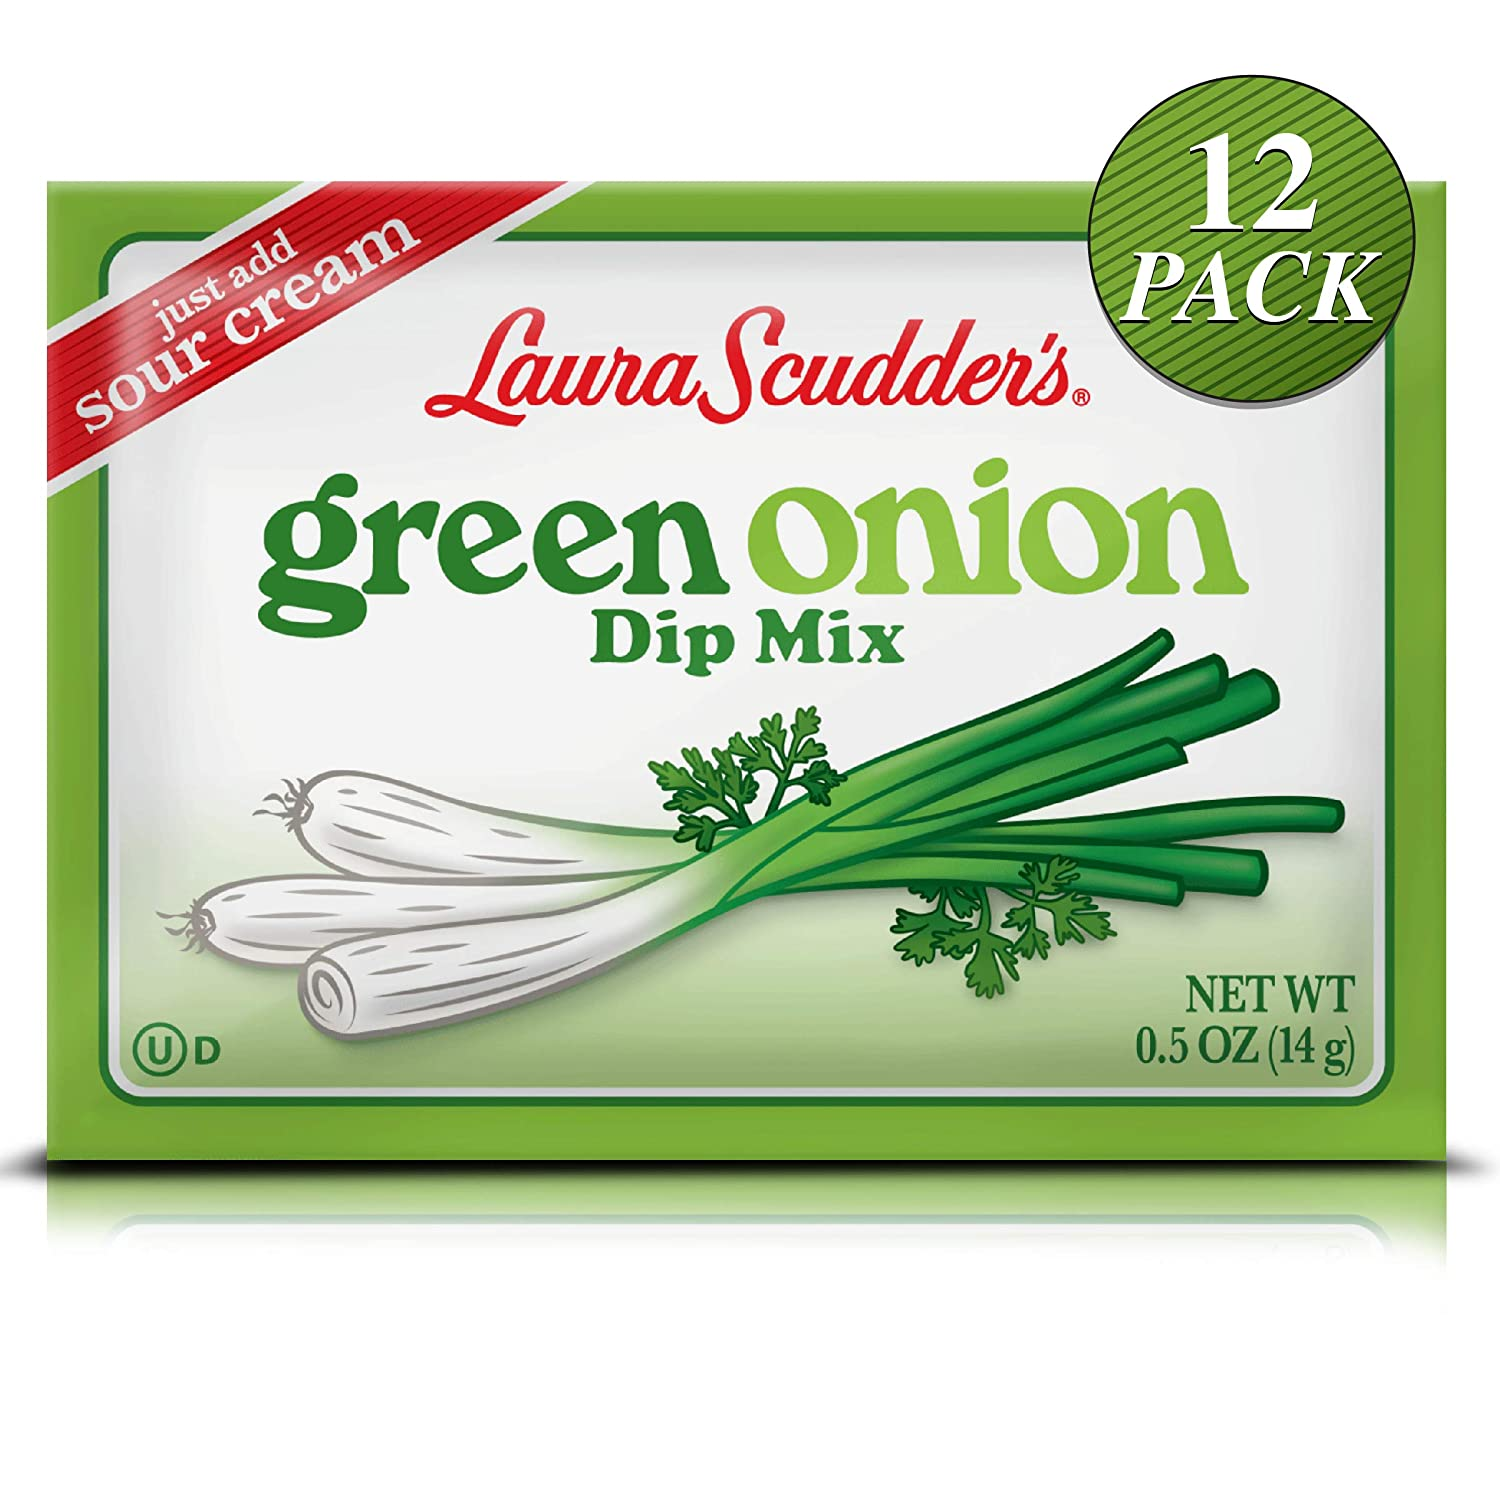 Laura Scudder's Green Onion Dip Mix Seasoning Powder Sauce (12 PACK)